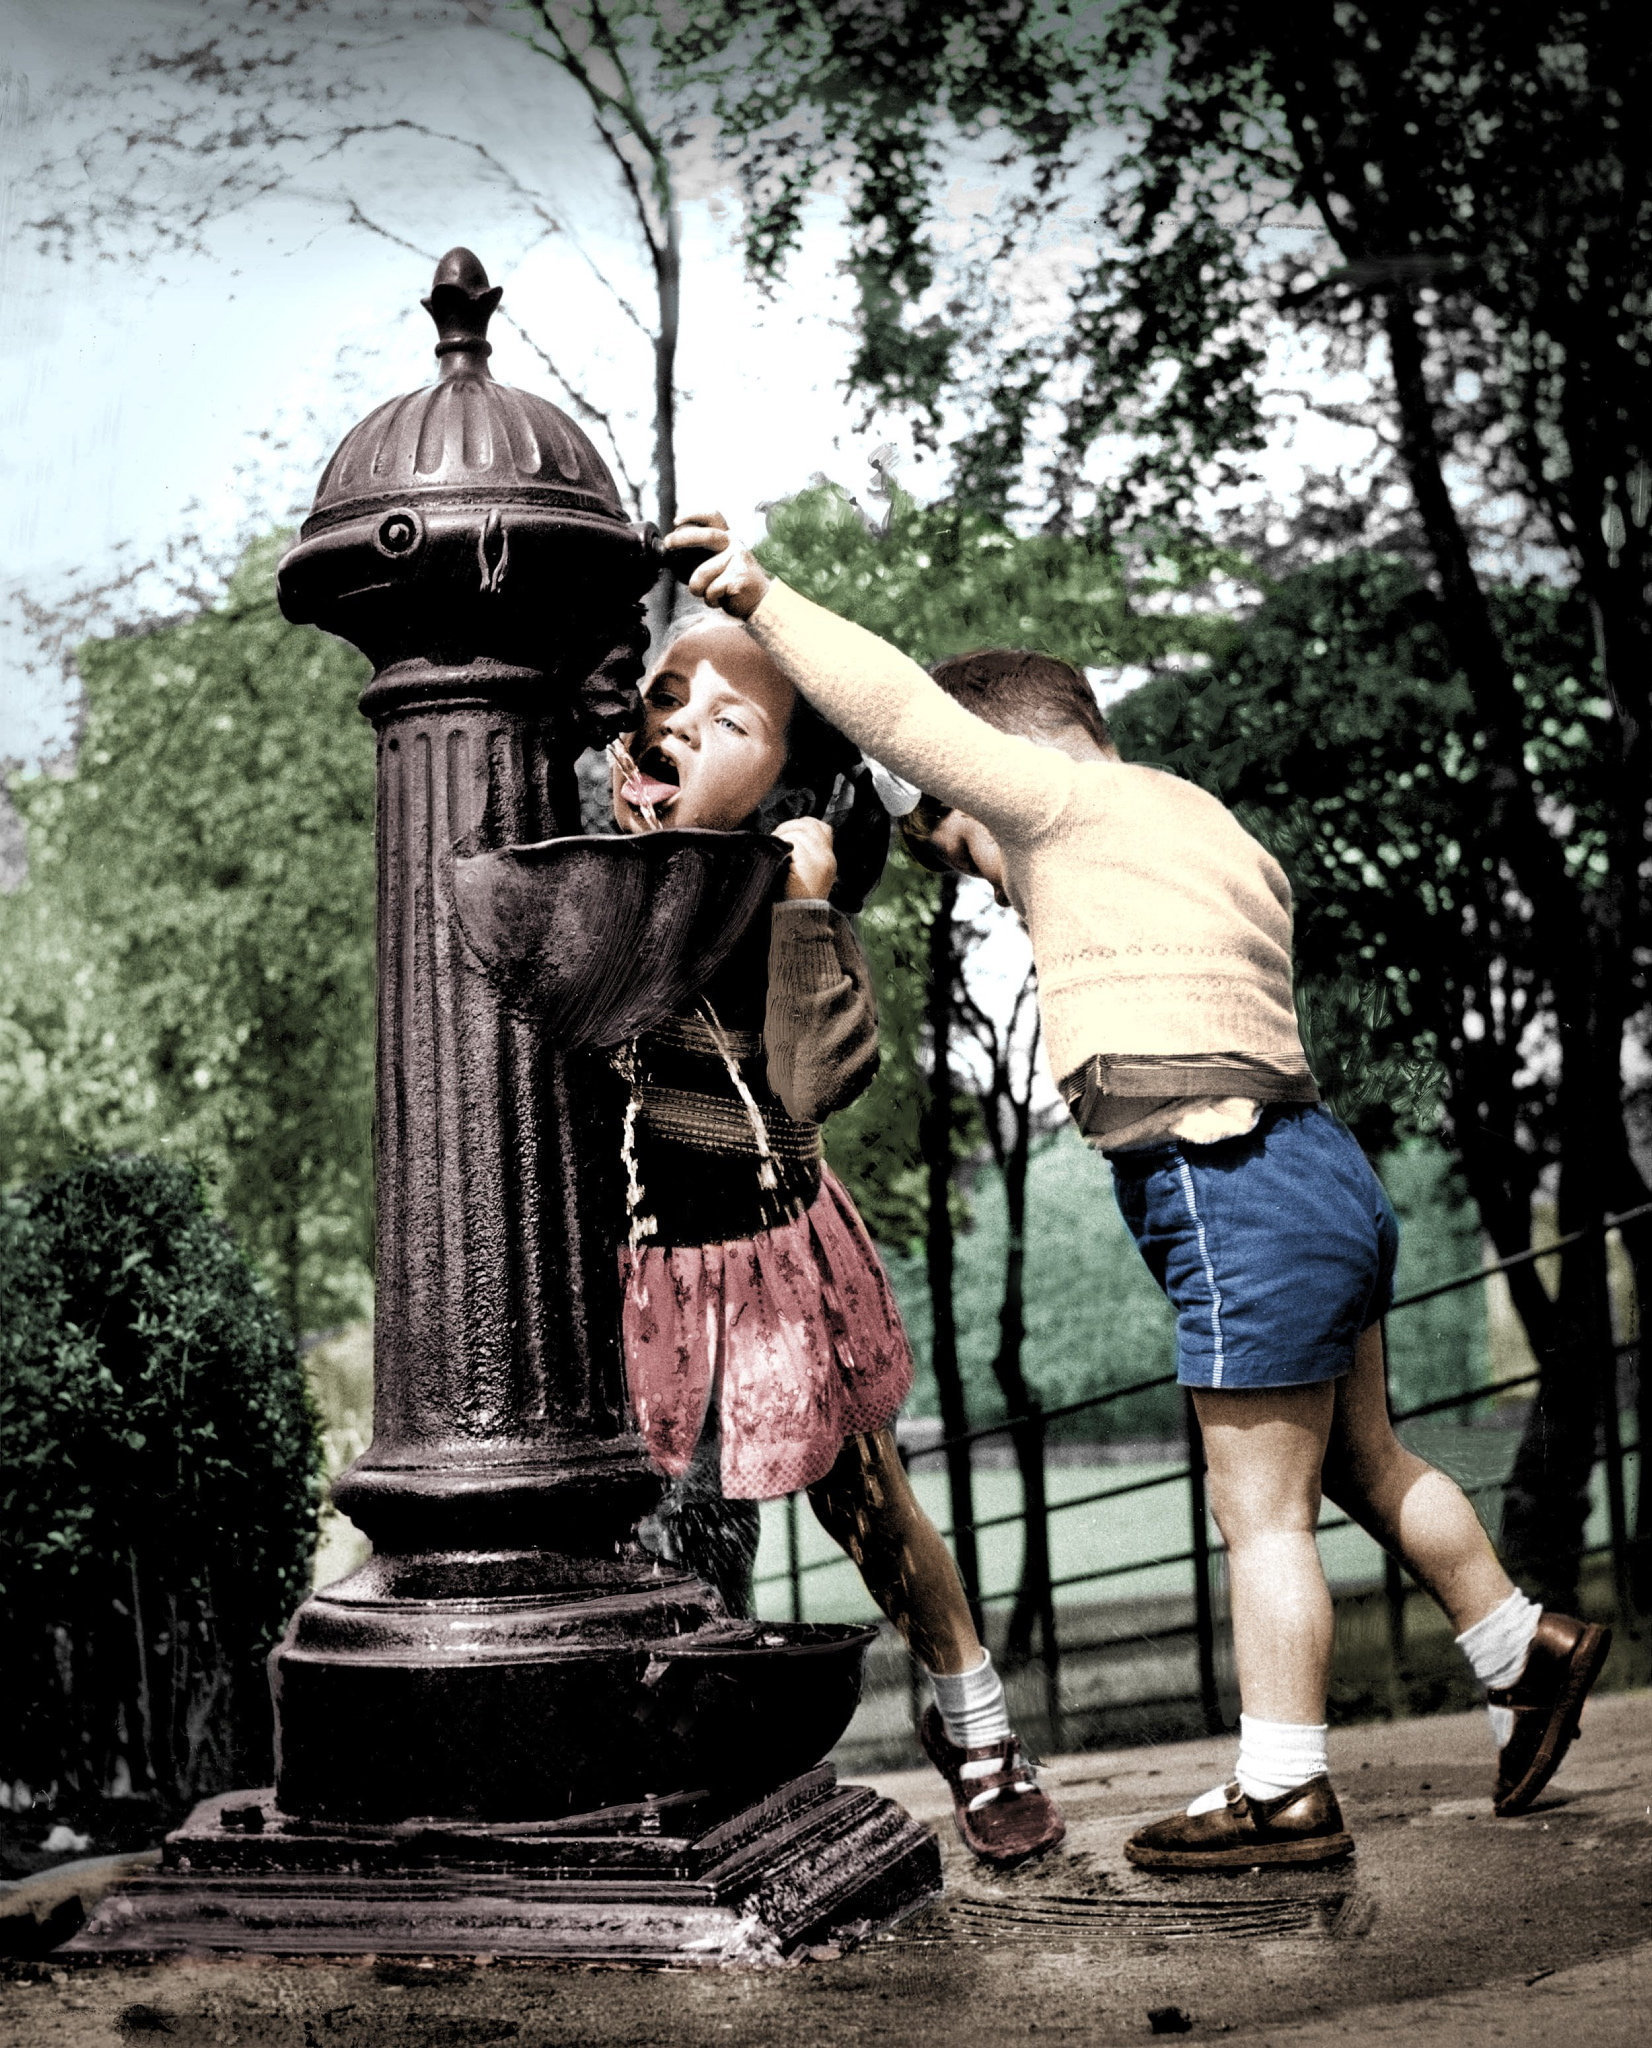 Glasgow: Parks And Open Spaces..A three year old boy turning on the water for his sister at the drinking fountain in Queen's Park, Glasgow..